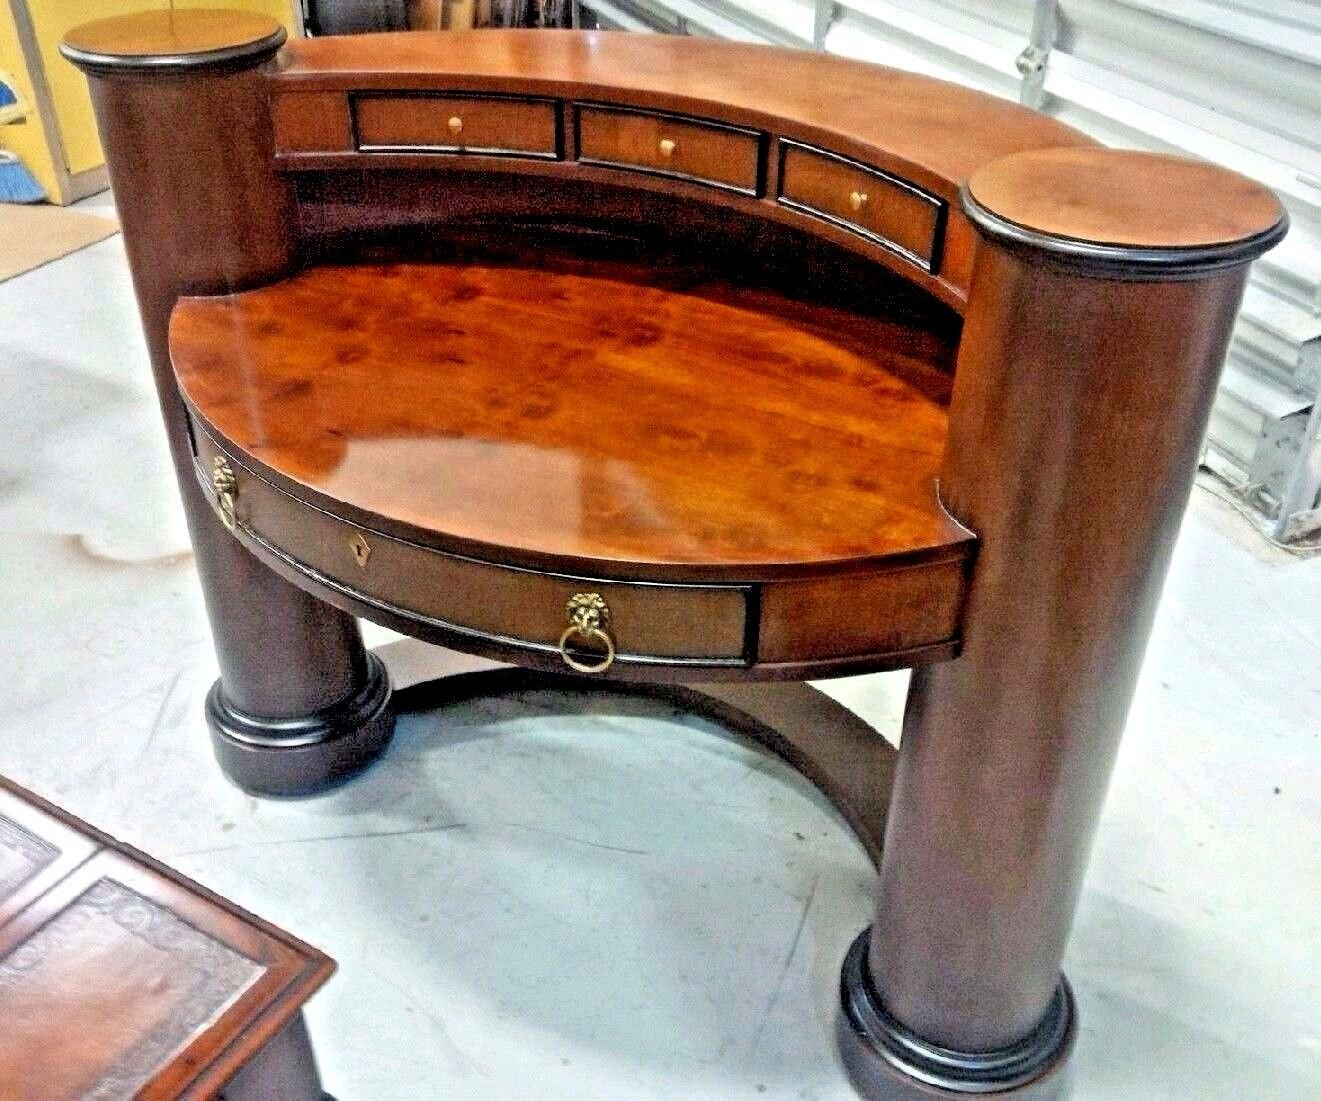 Biedermeier Desk By Century Furniture  Designed By Ray. End Tables And Coffee Table Set. Plank Coffee Table. Dinner Table Centerpiece. Small Bathroom Vanity With Drawers. Csx Help Desk. Bosch Drawer Dishwasher. Ca Service Desk Manager. Bench Table Set